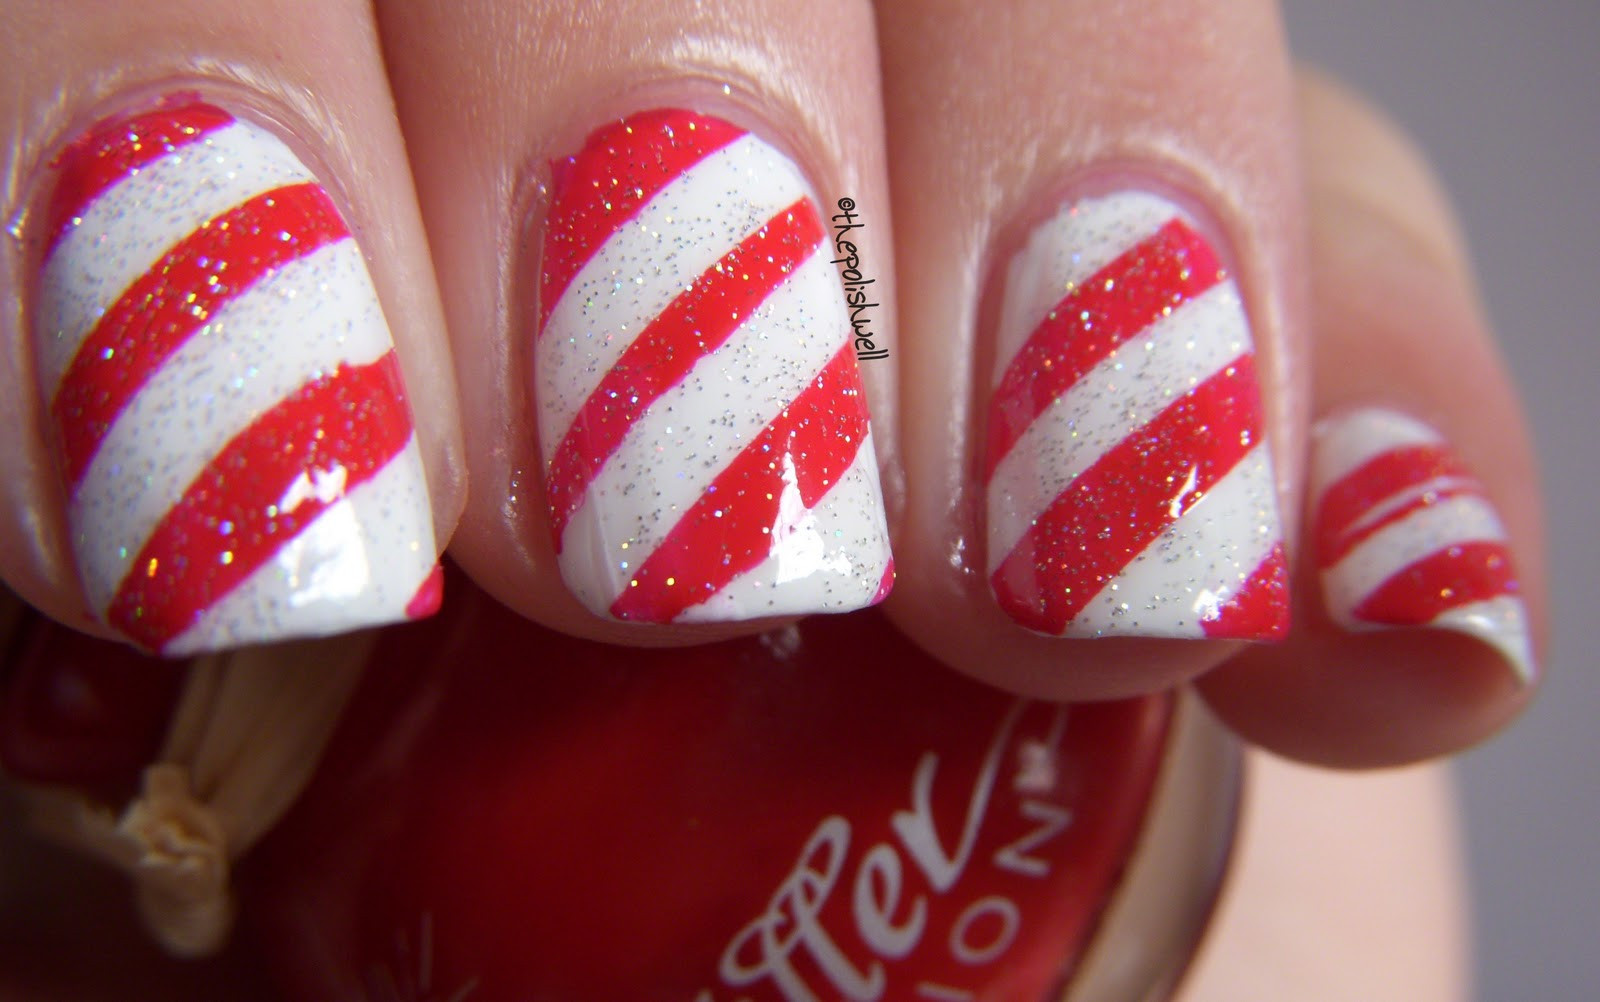 Christmas Nails Candy Cane  The Polish Well 12 Days of Christmas Day 8 Candy Cane